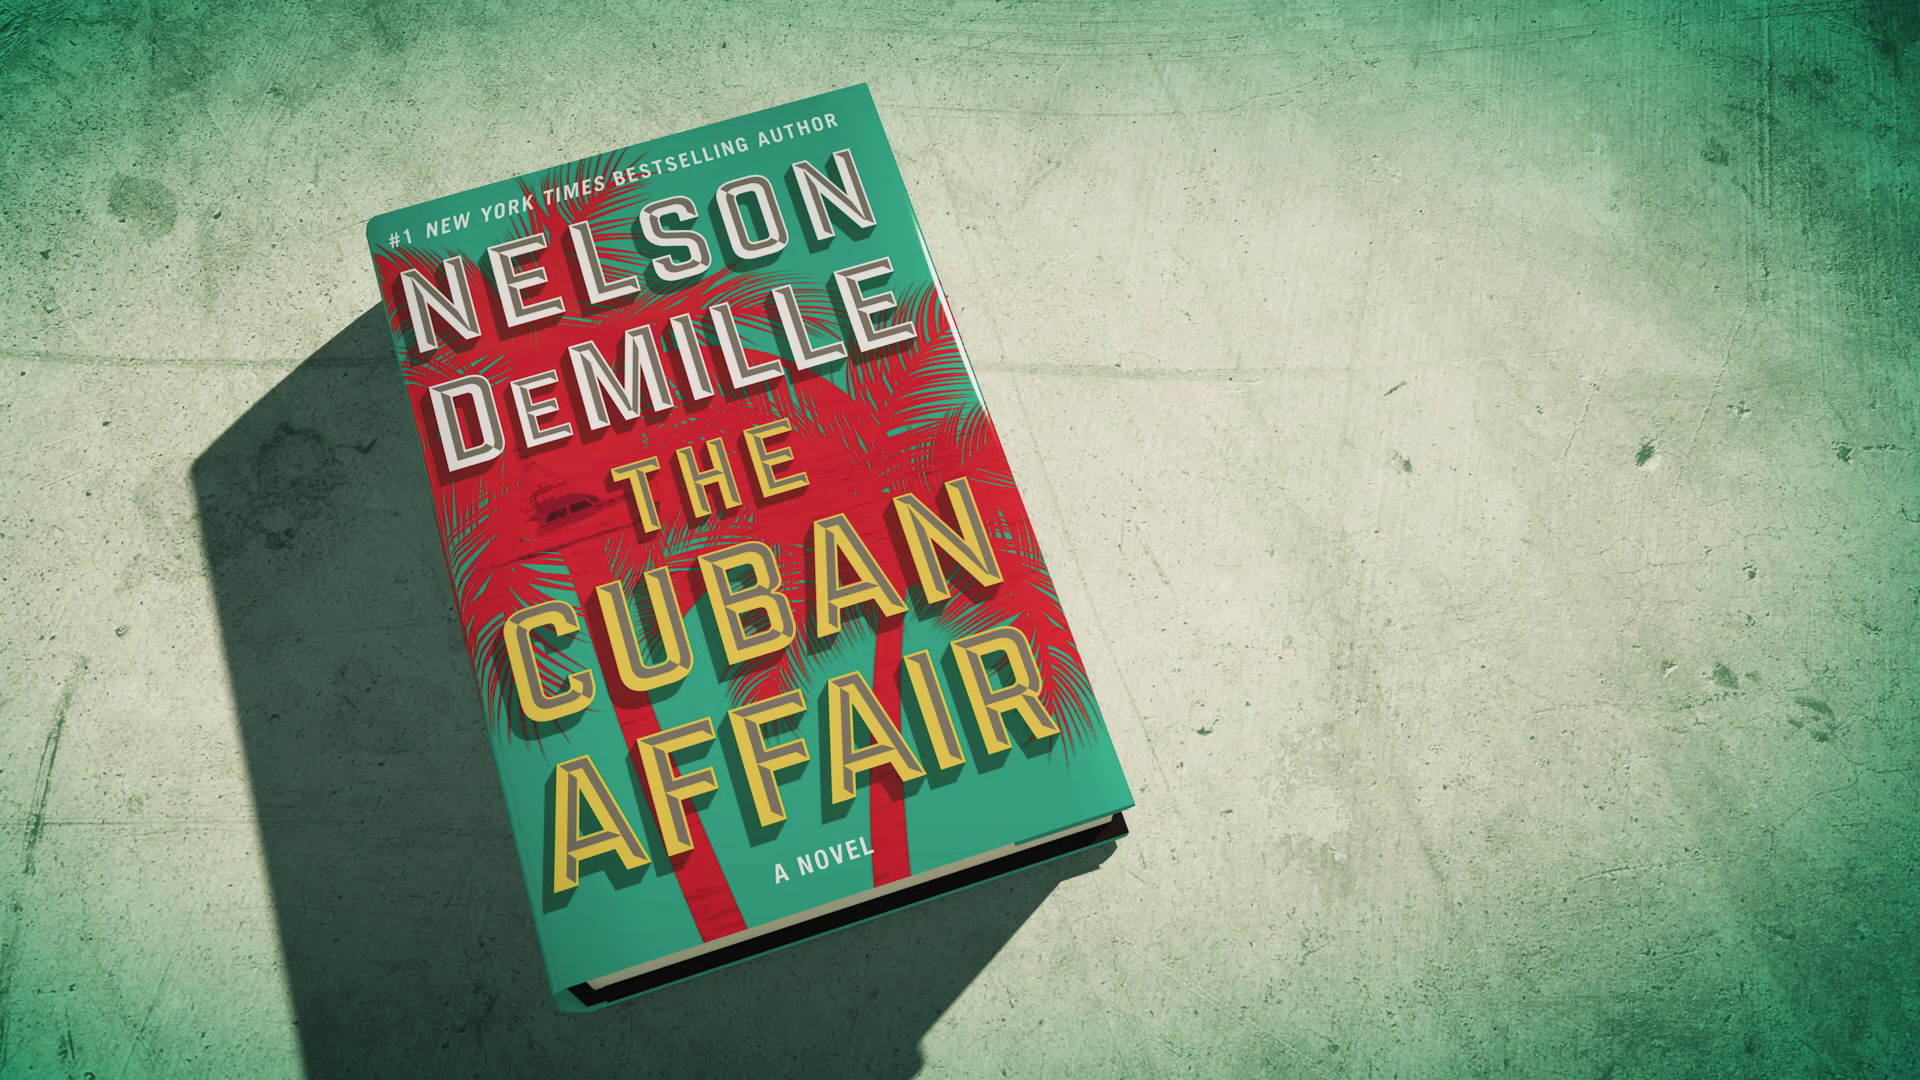 The new blockbuster thriller from Nelson DeMille, THE CUBAN AFFAIR!